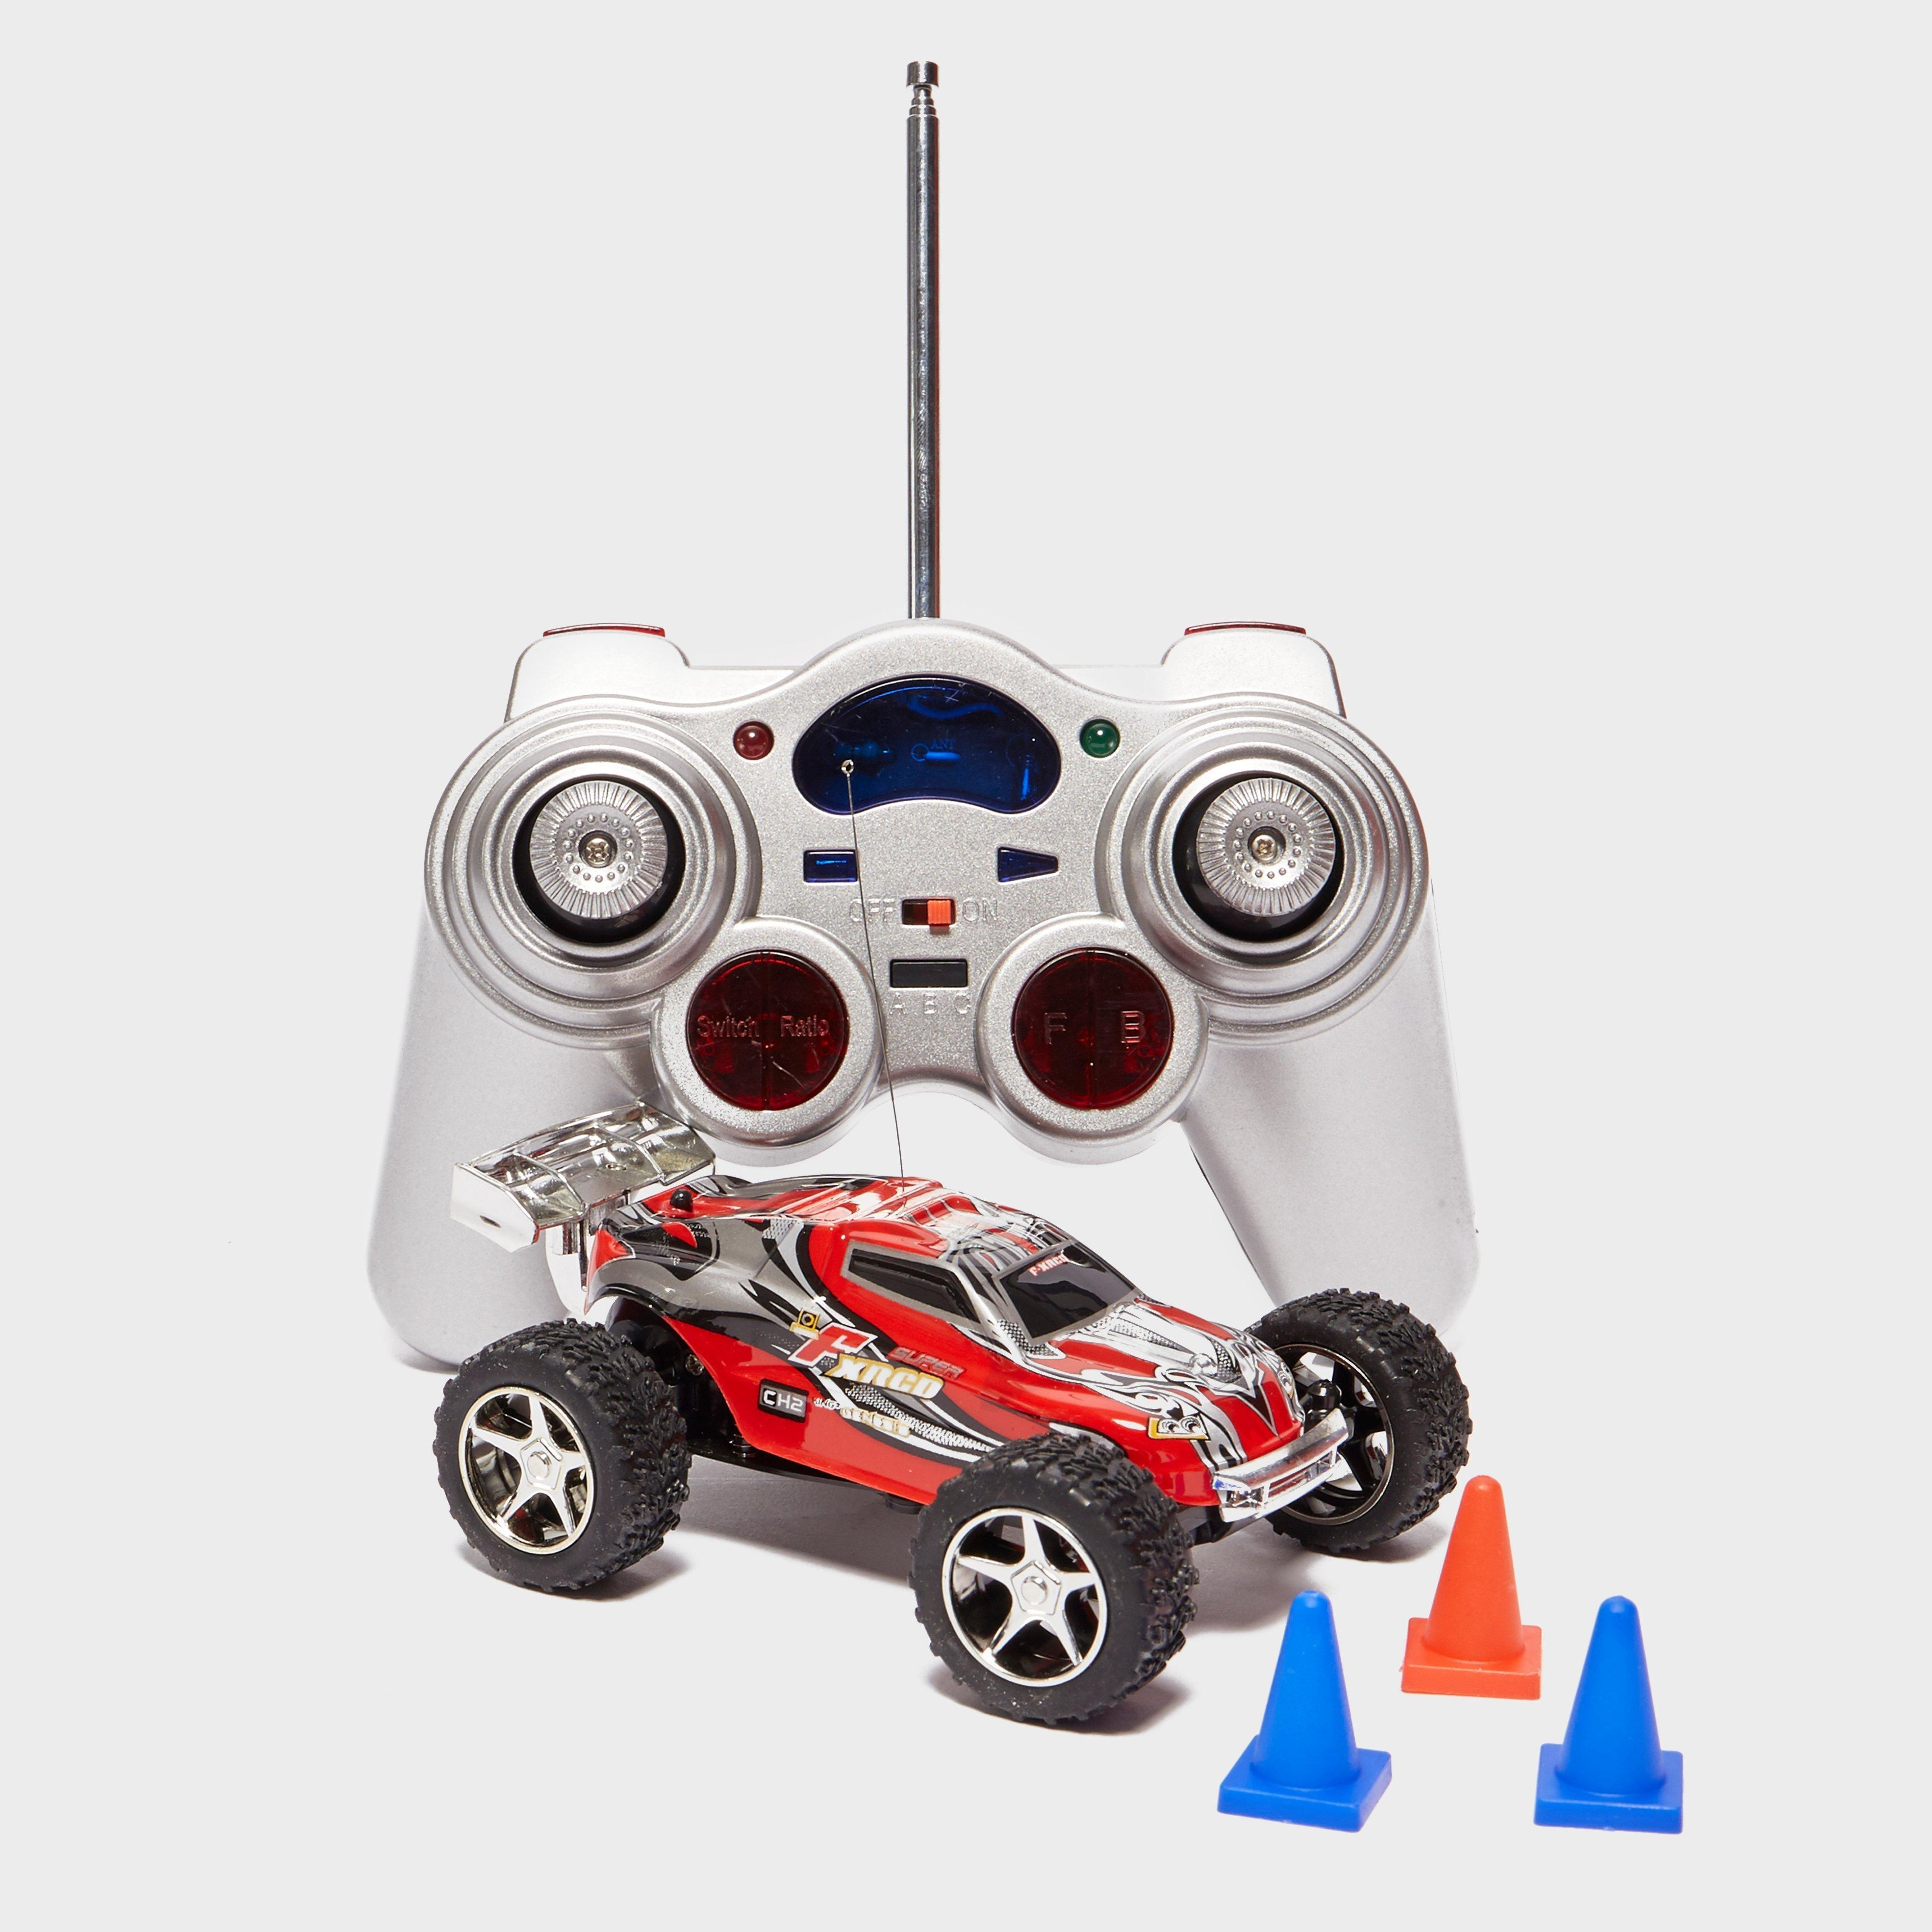 Invento Invento Remote Control High Speed Racing Car - N/A, N/A